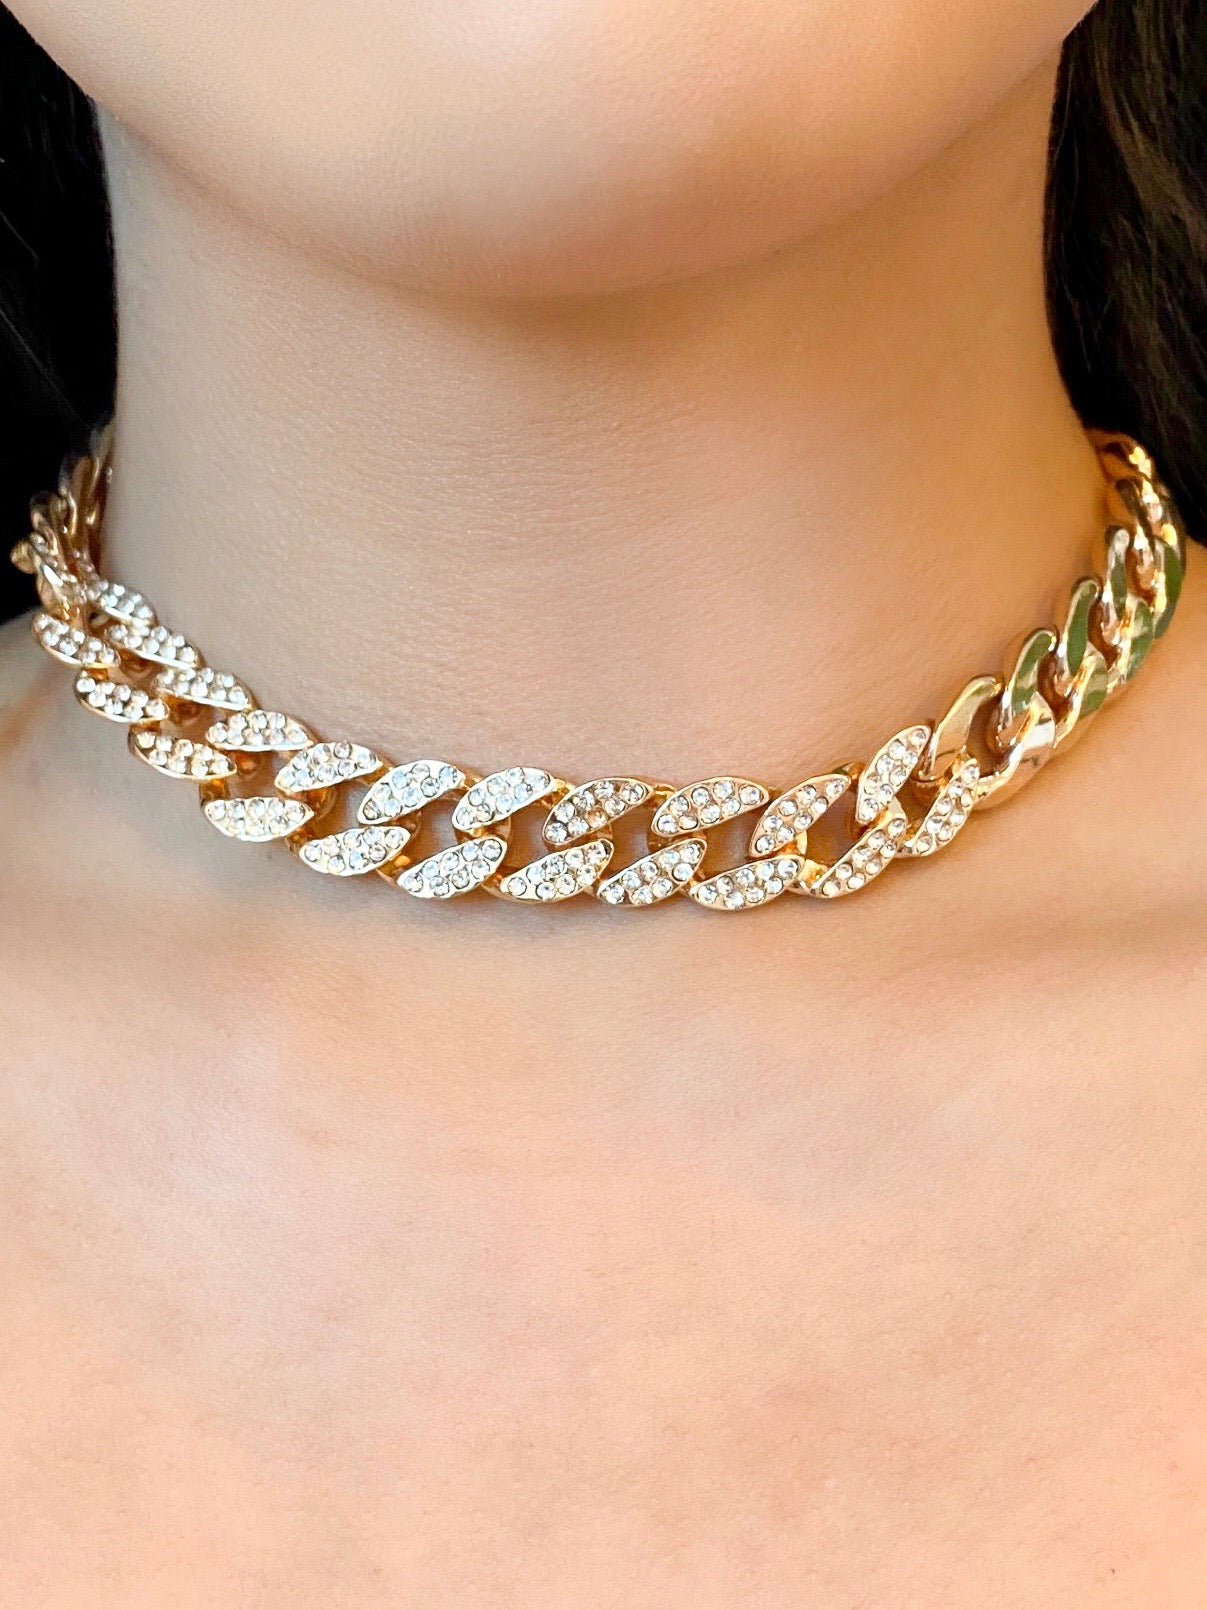 gold-tone hardware, lobster claw closure, gold chain detailing, gold-tone necklace